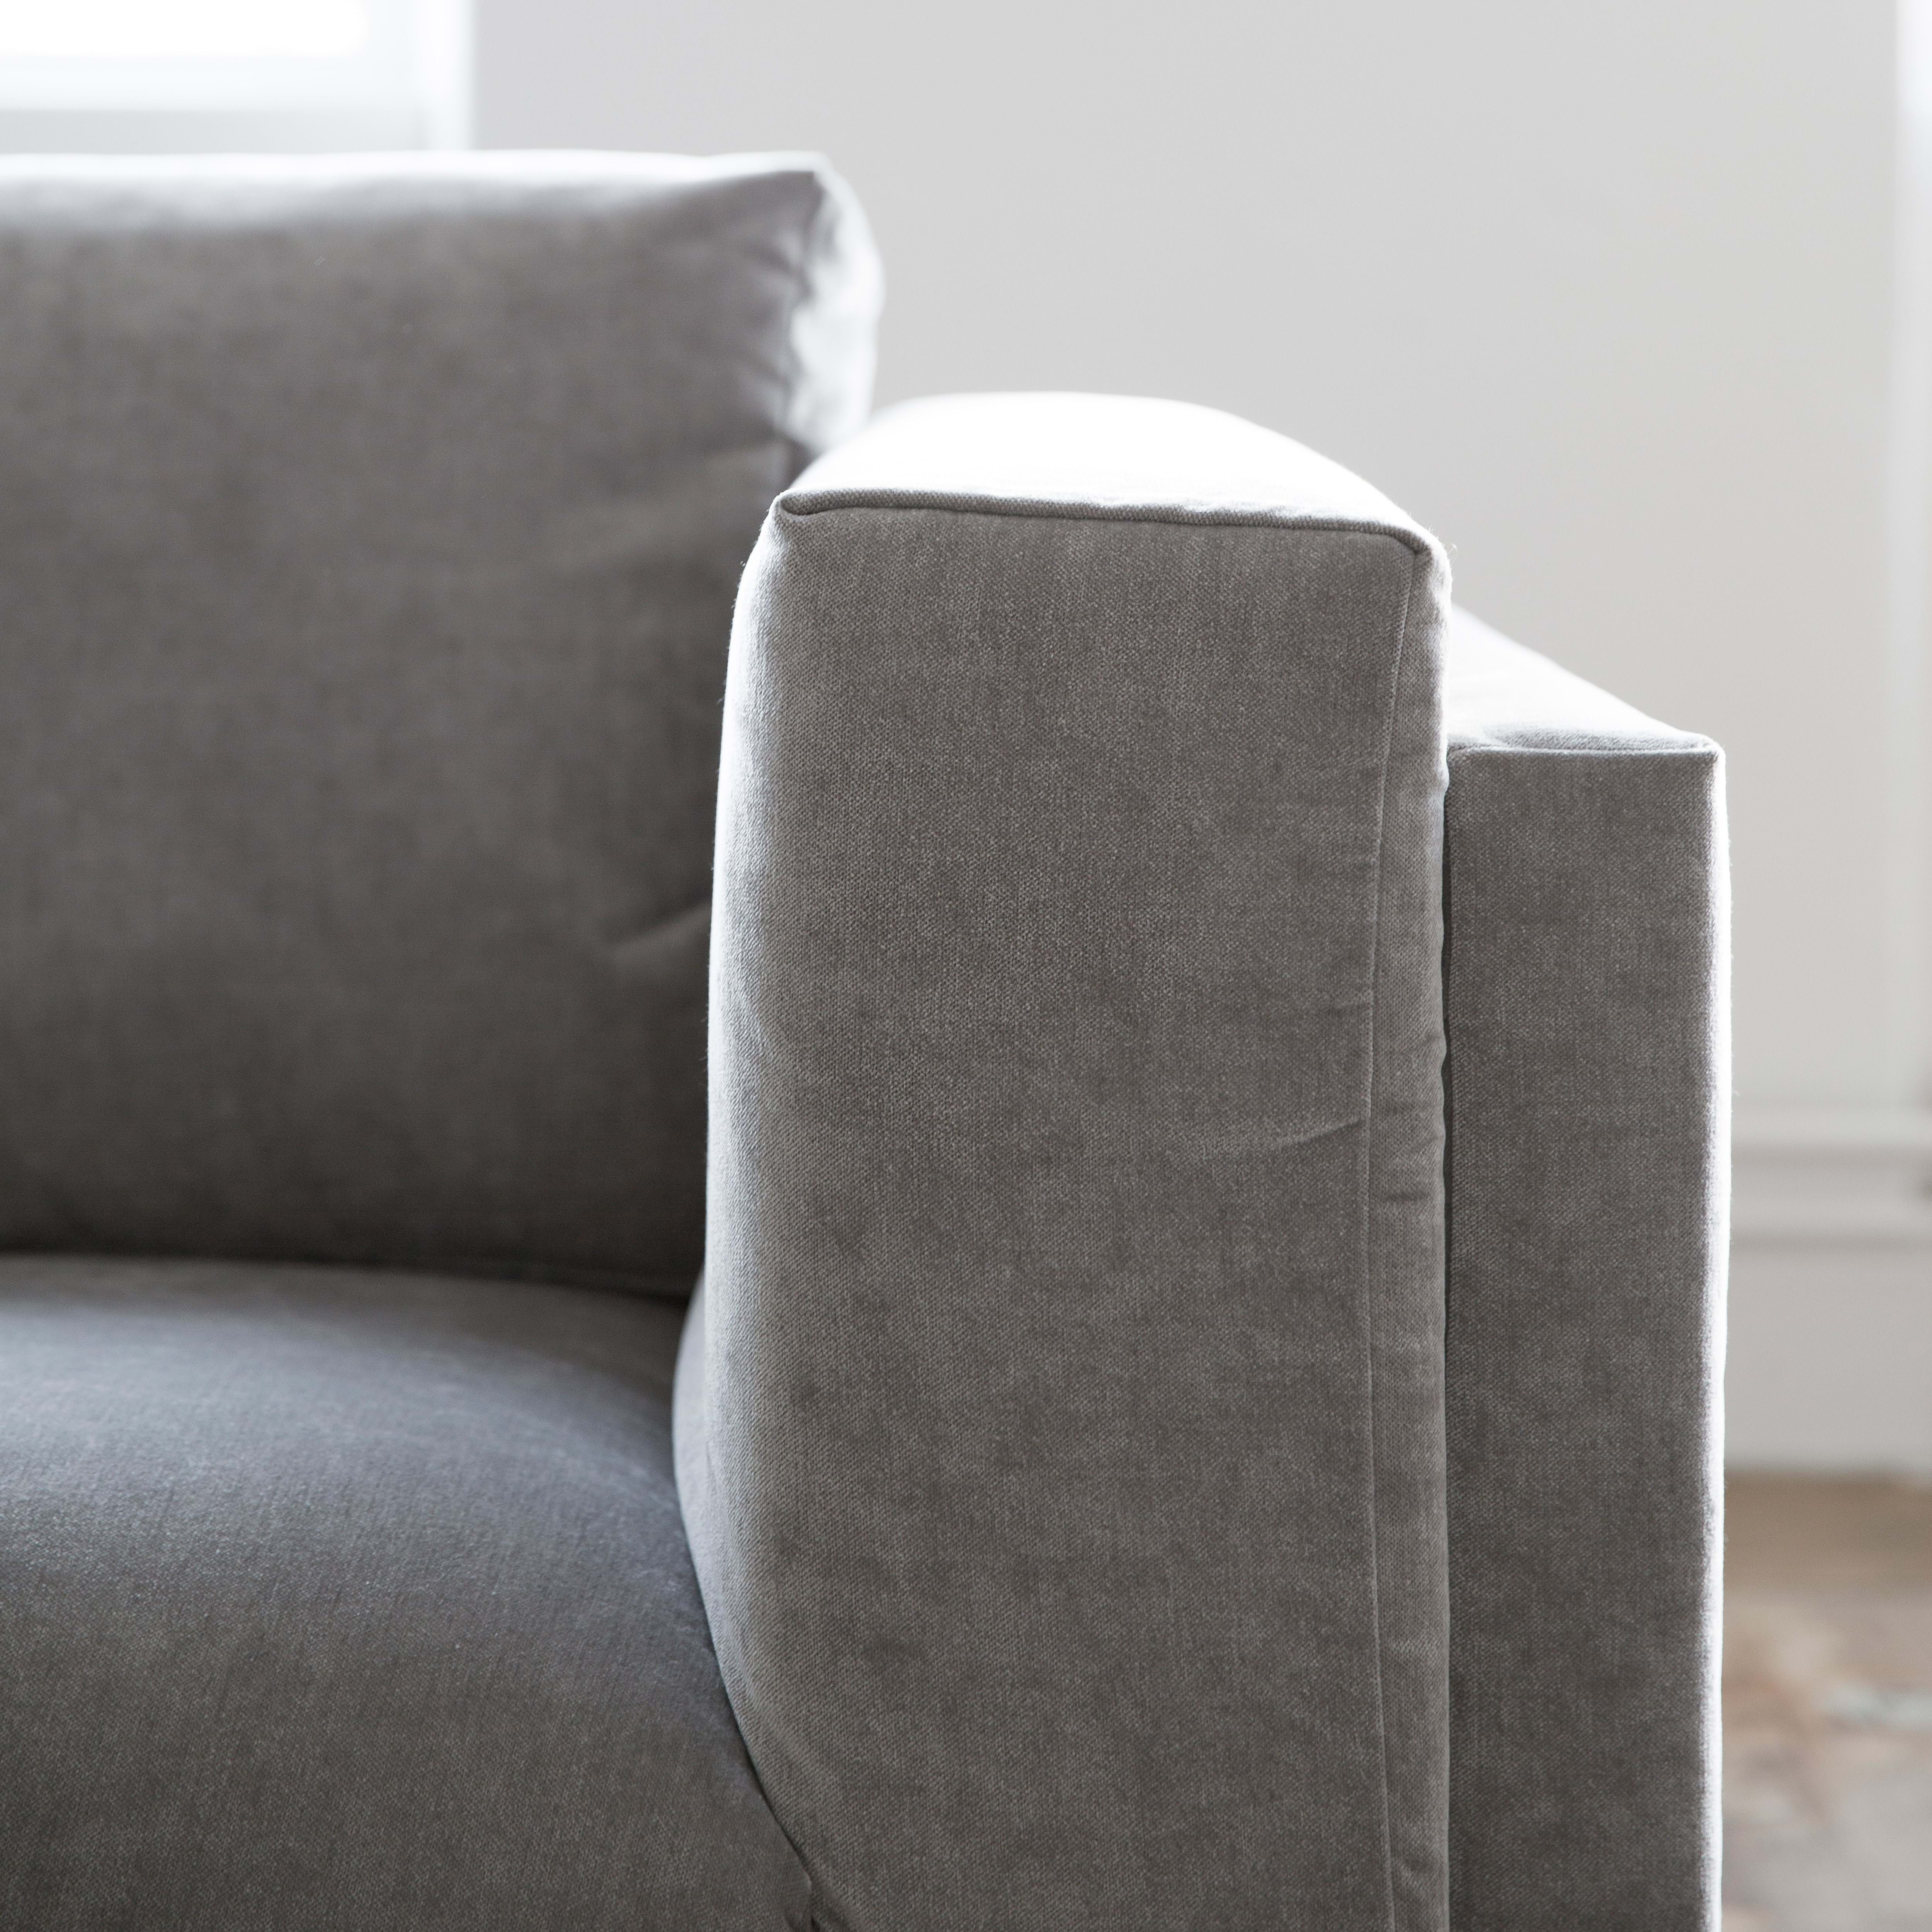 Excellent Ikea Nockeby 2 Seater Sofa With Chaise Longue Cover Left Ibusinesslaw Wood Chair Design Ideas Ibusinesslaworg